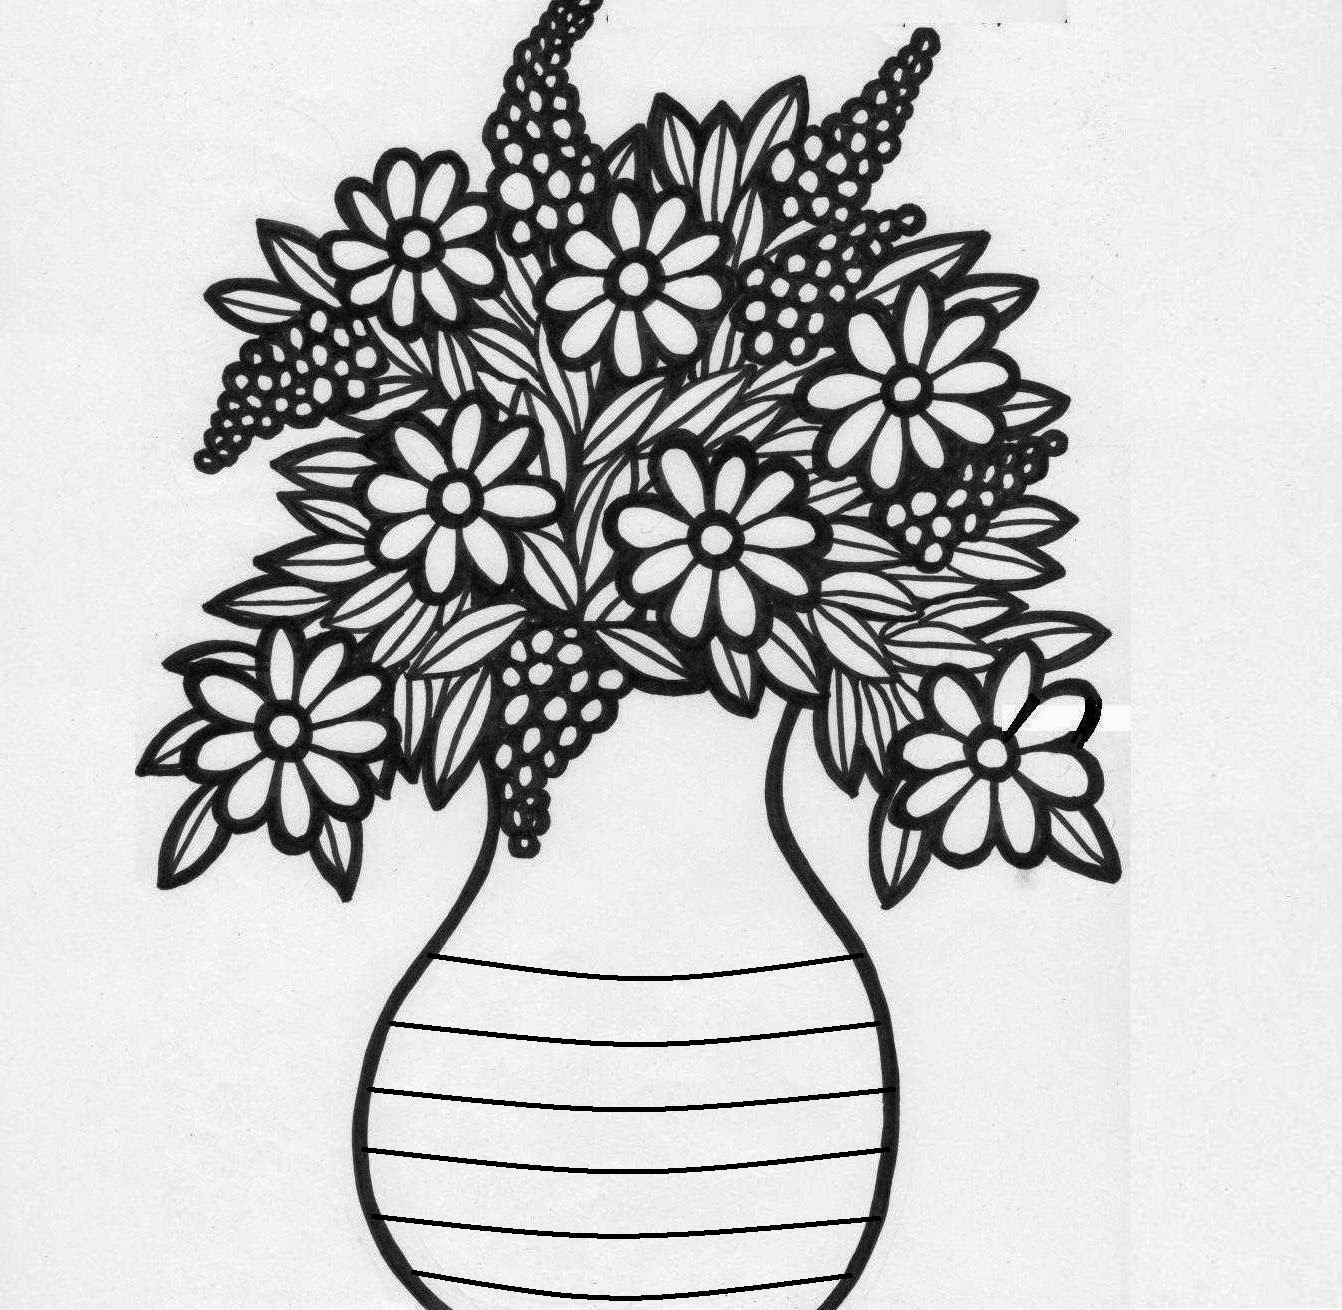 Easy Drawings Of Flowers In A Vase How To Draw A Flower Vase Step